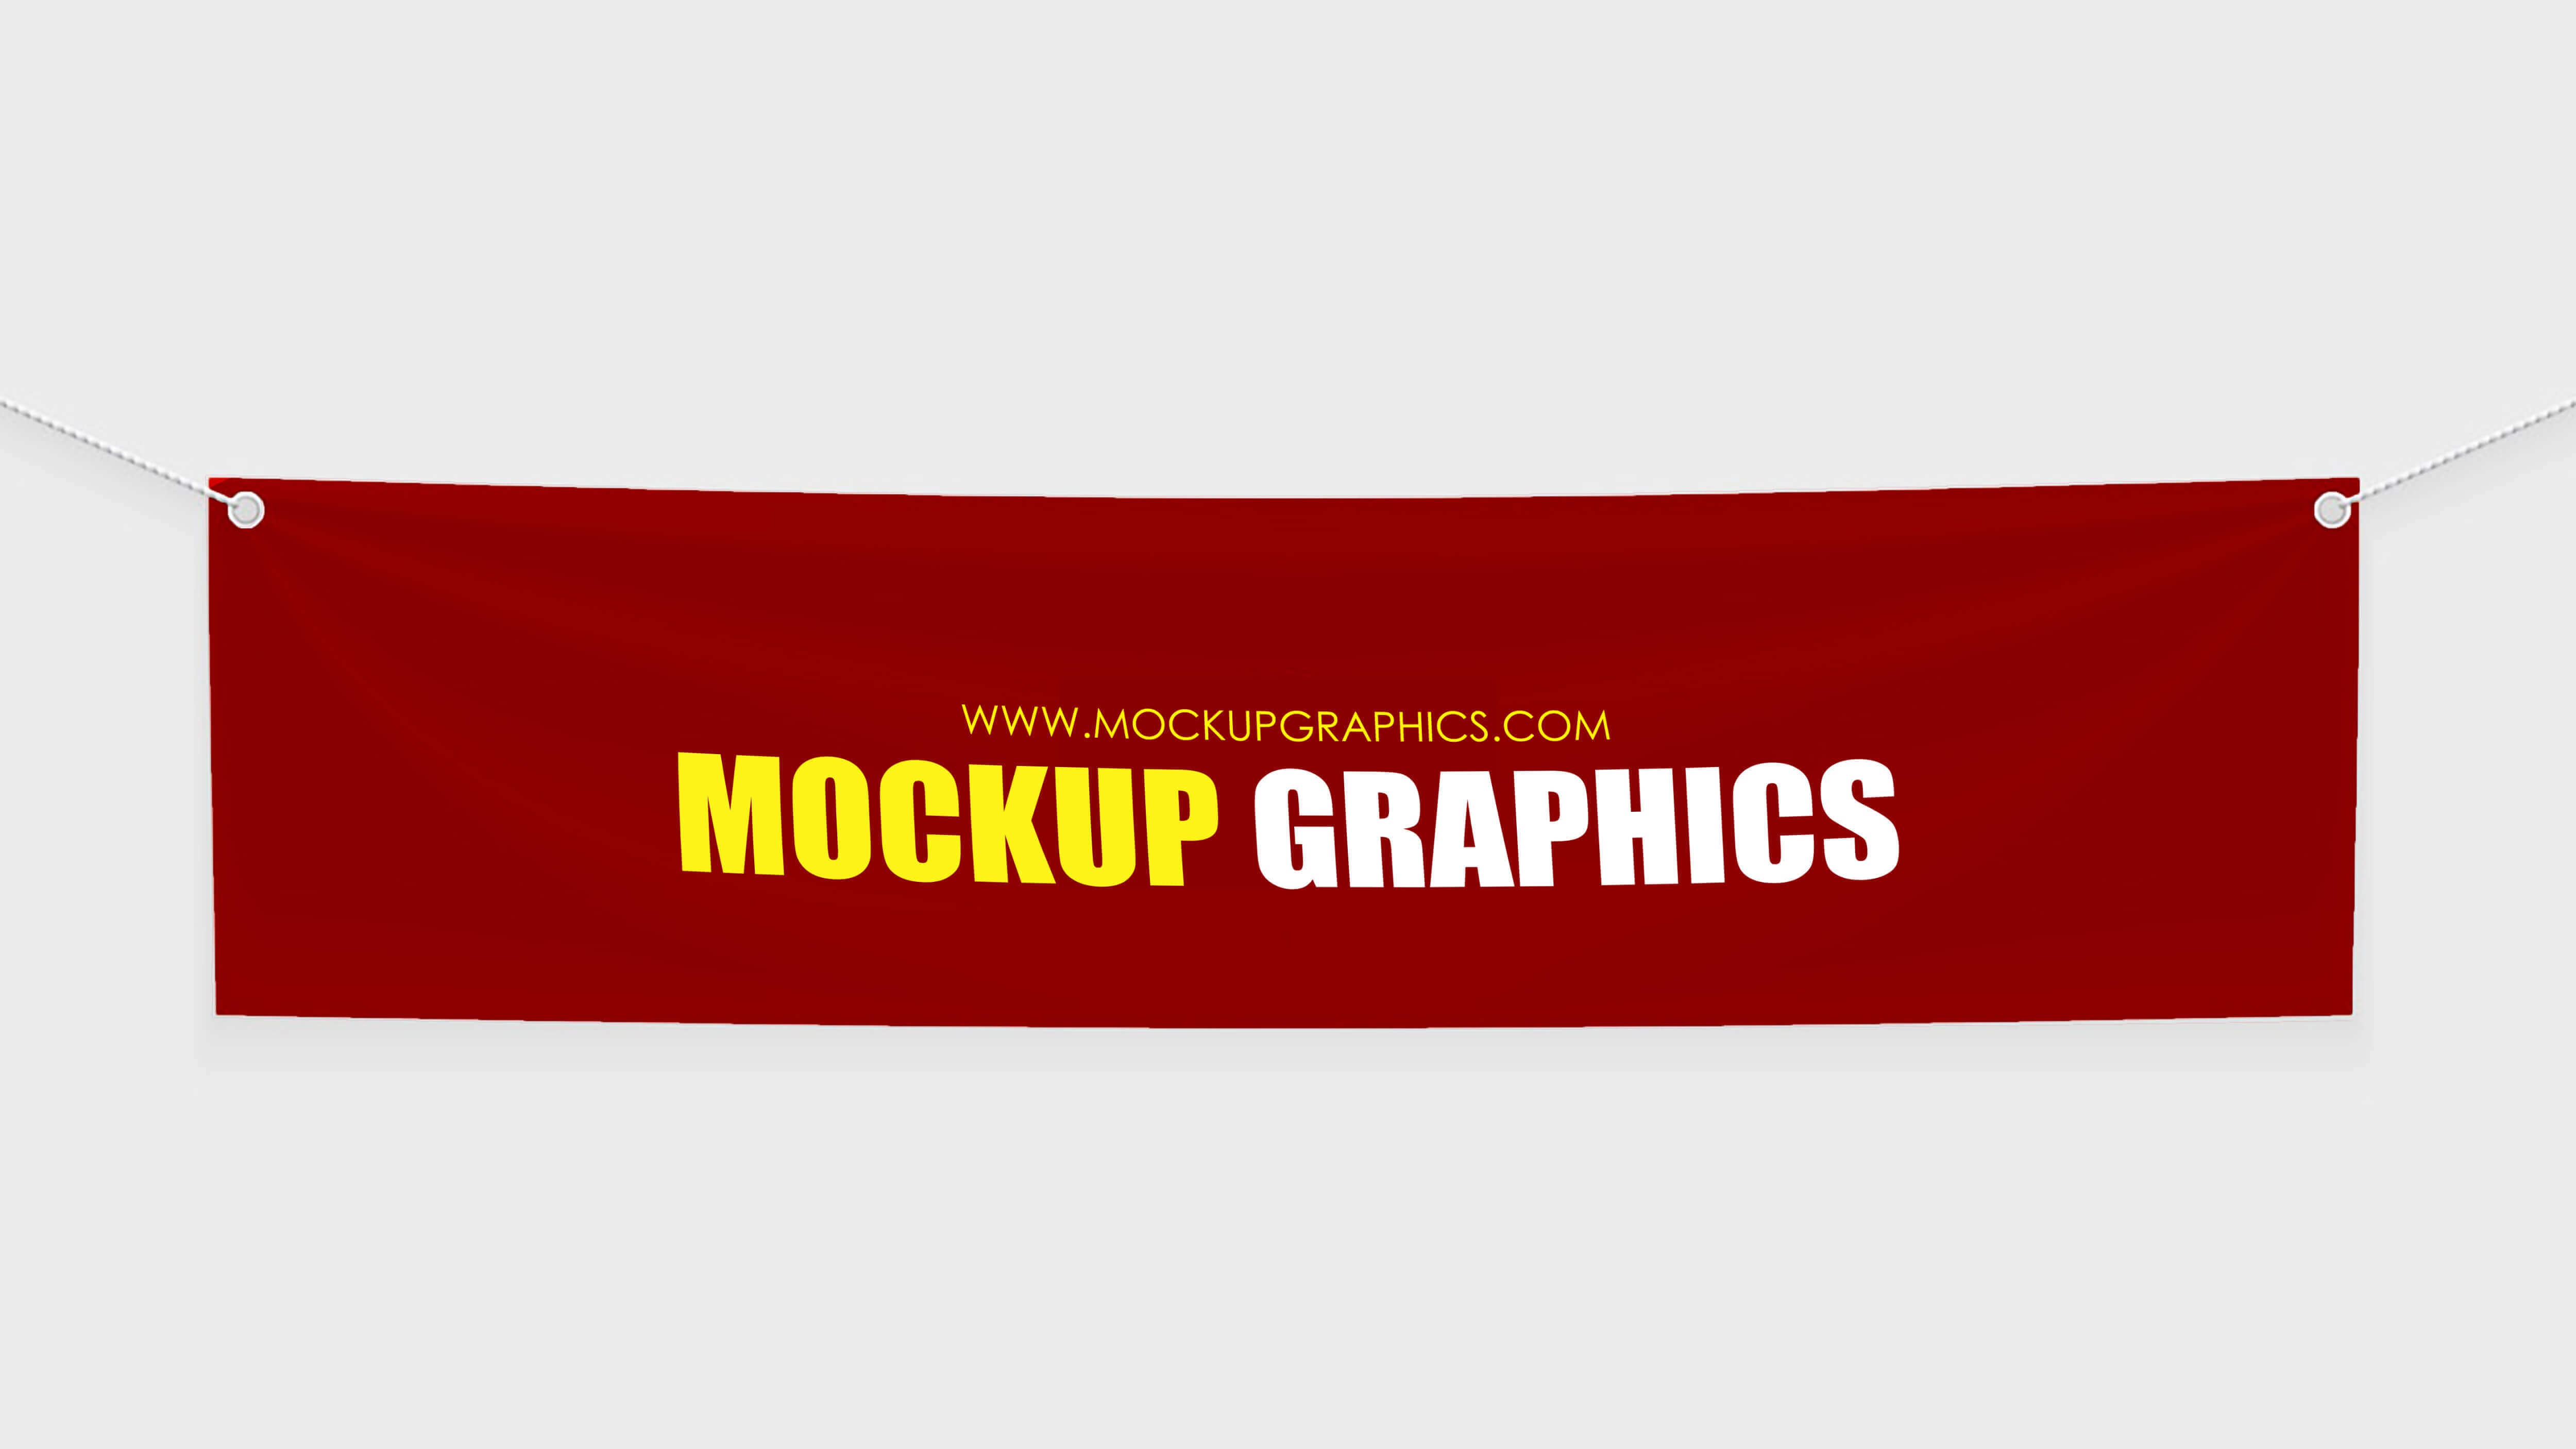 psd textile banner mockup - www.mockupgraphics.com